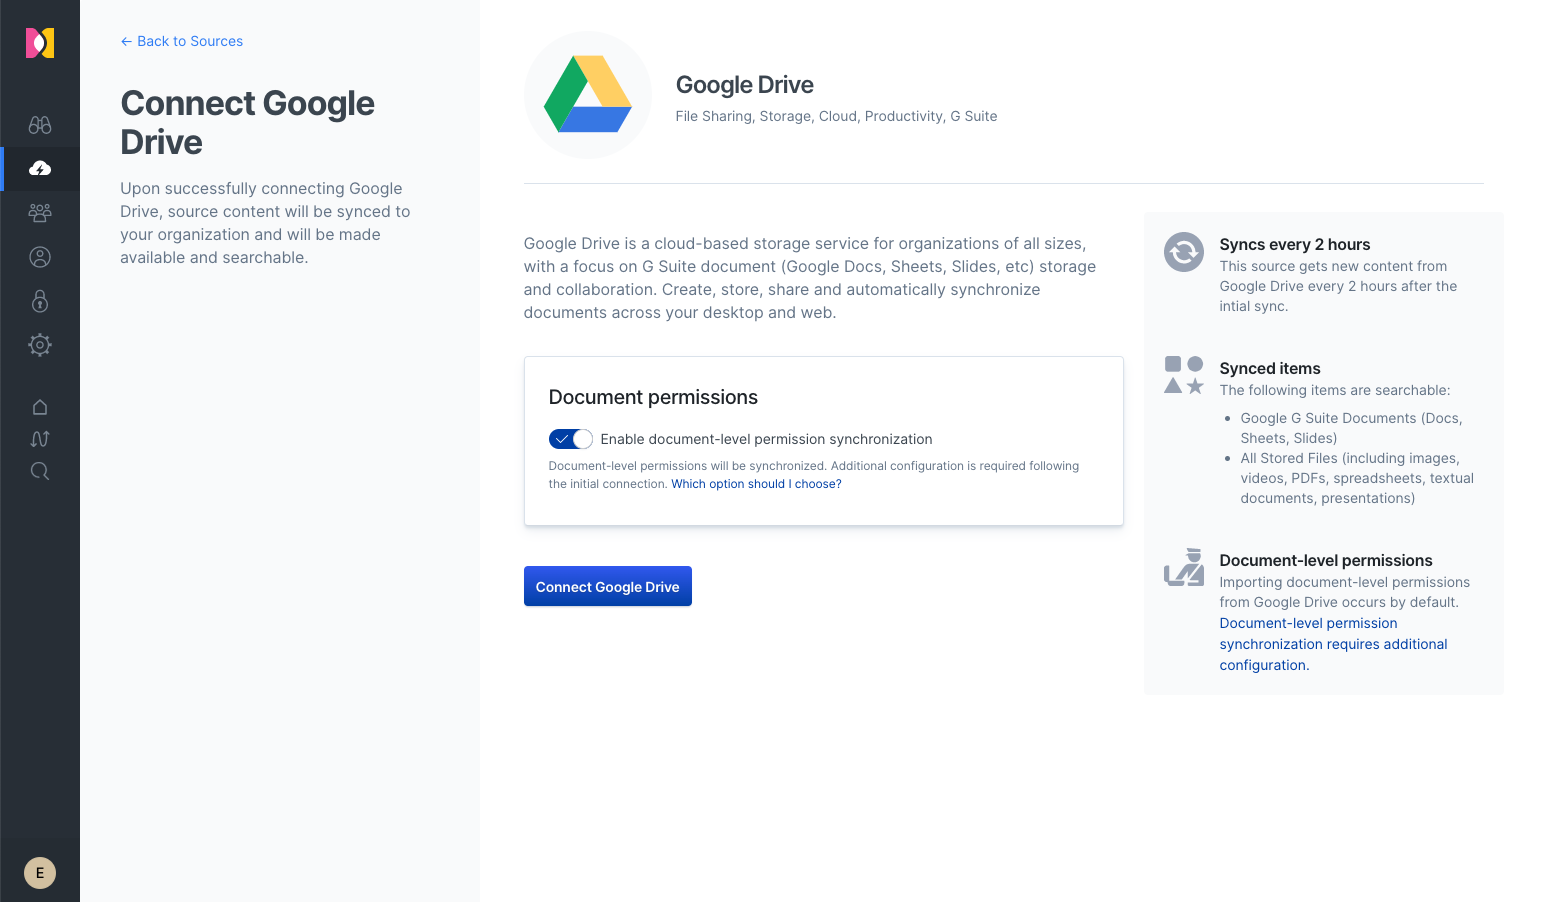 Connecting Google Drive to Workplace Search